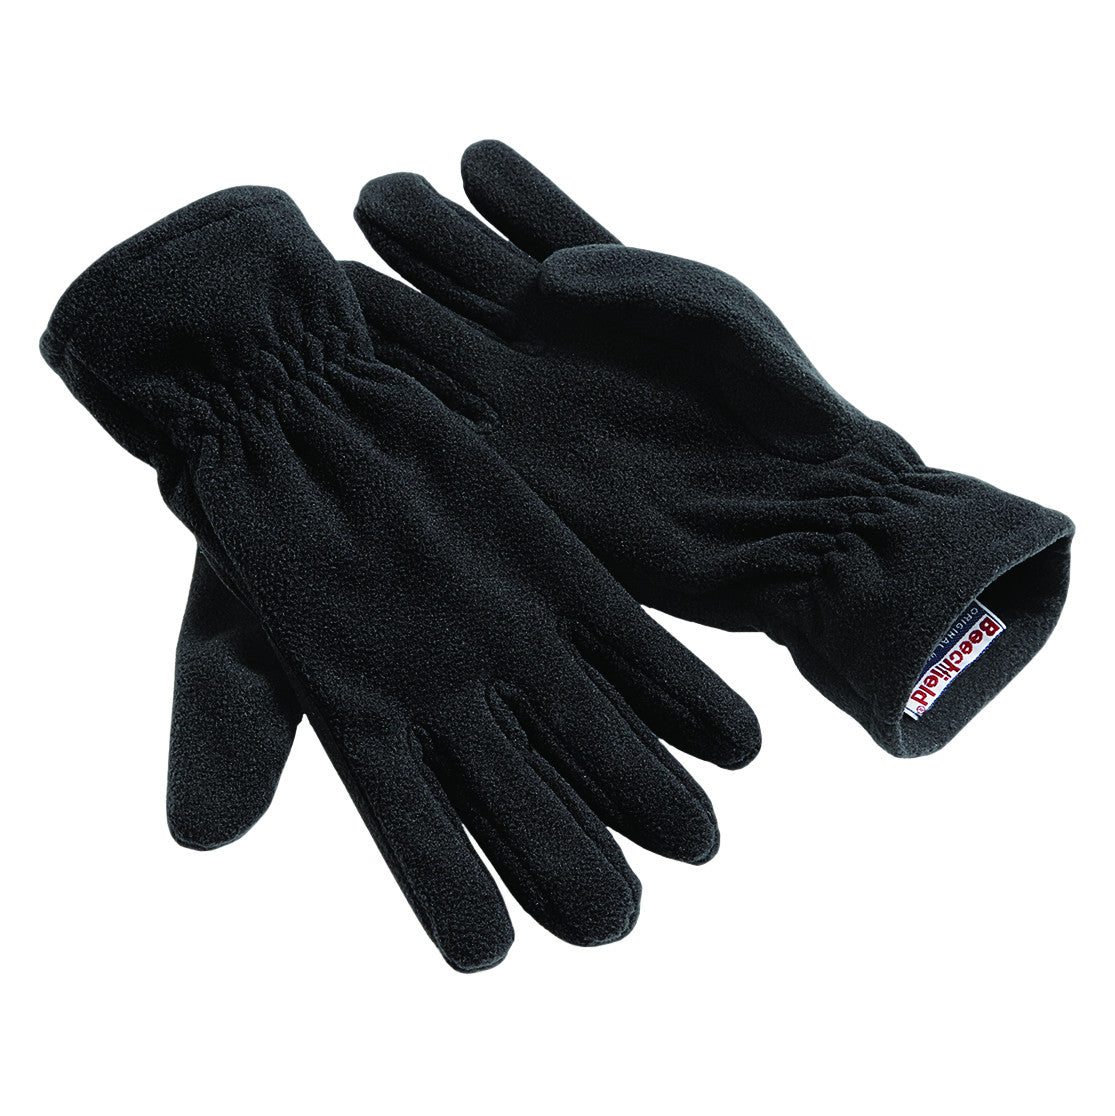 Fleece Gloves - peterdrew.com  - 2